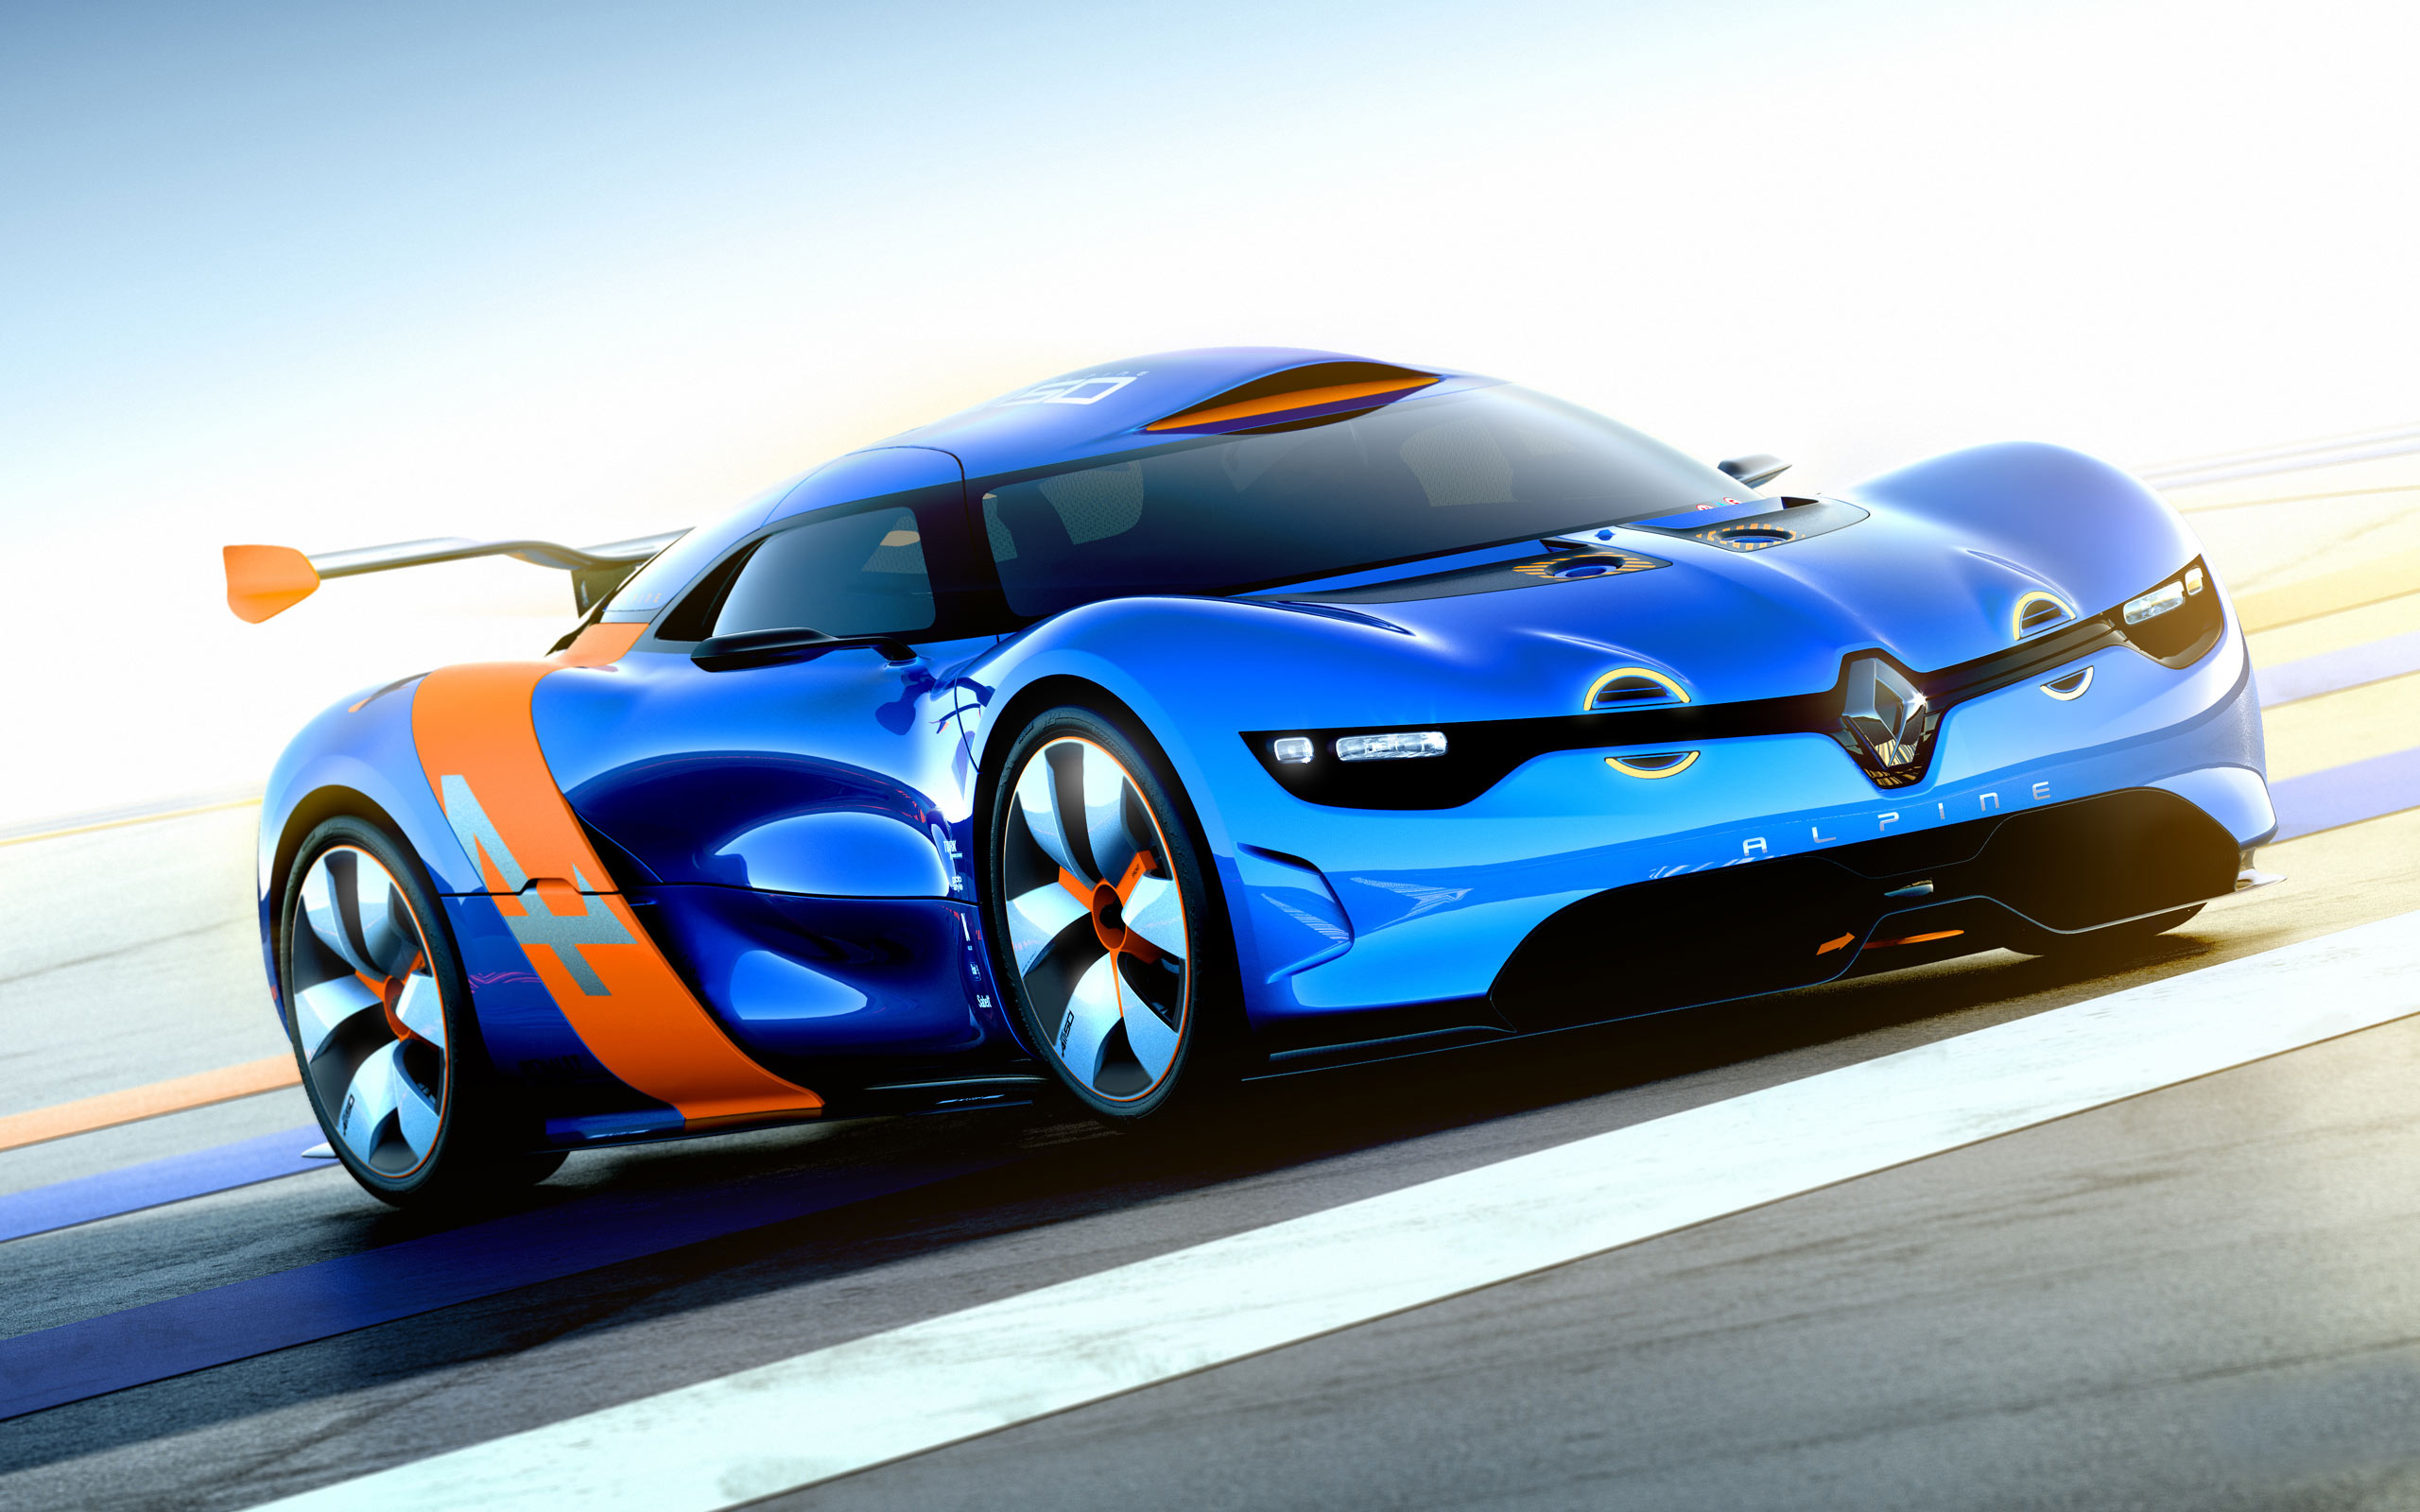 renault_alpine_concept_car-wide